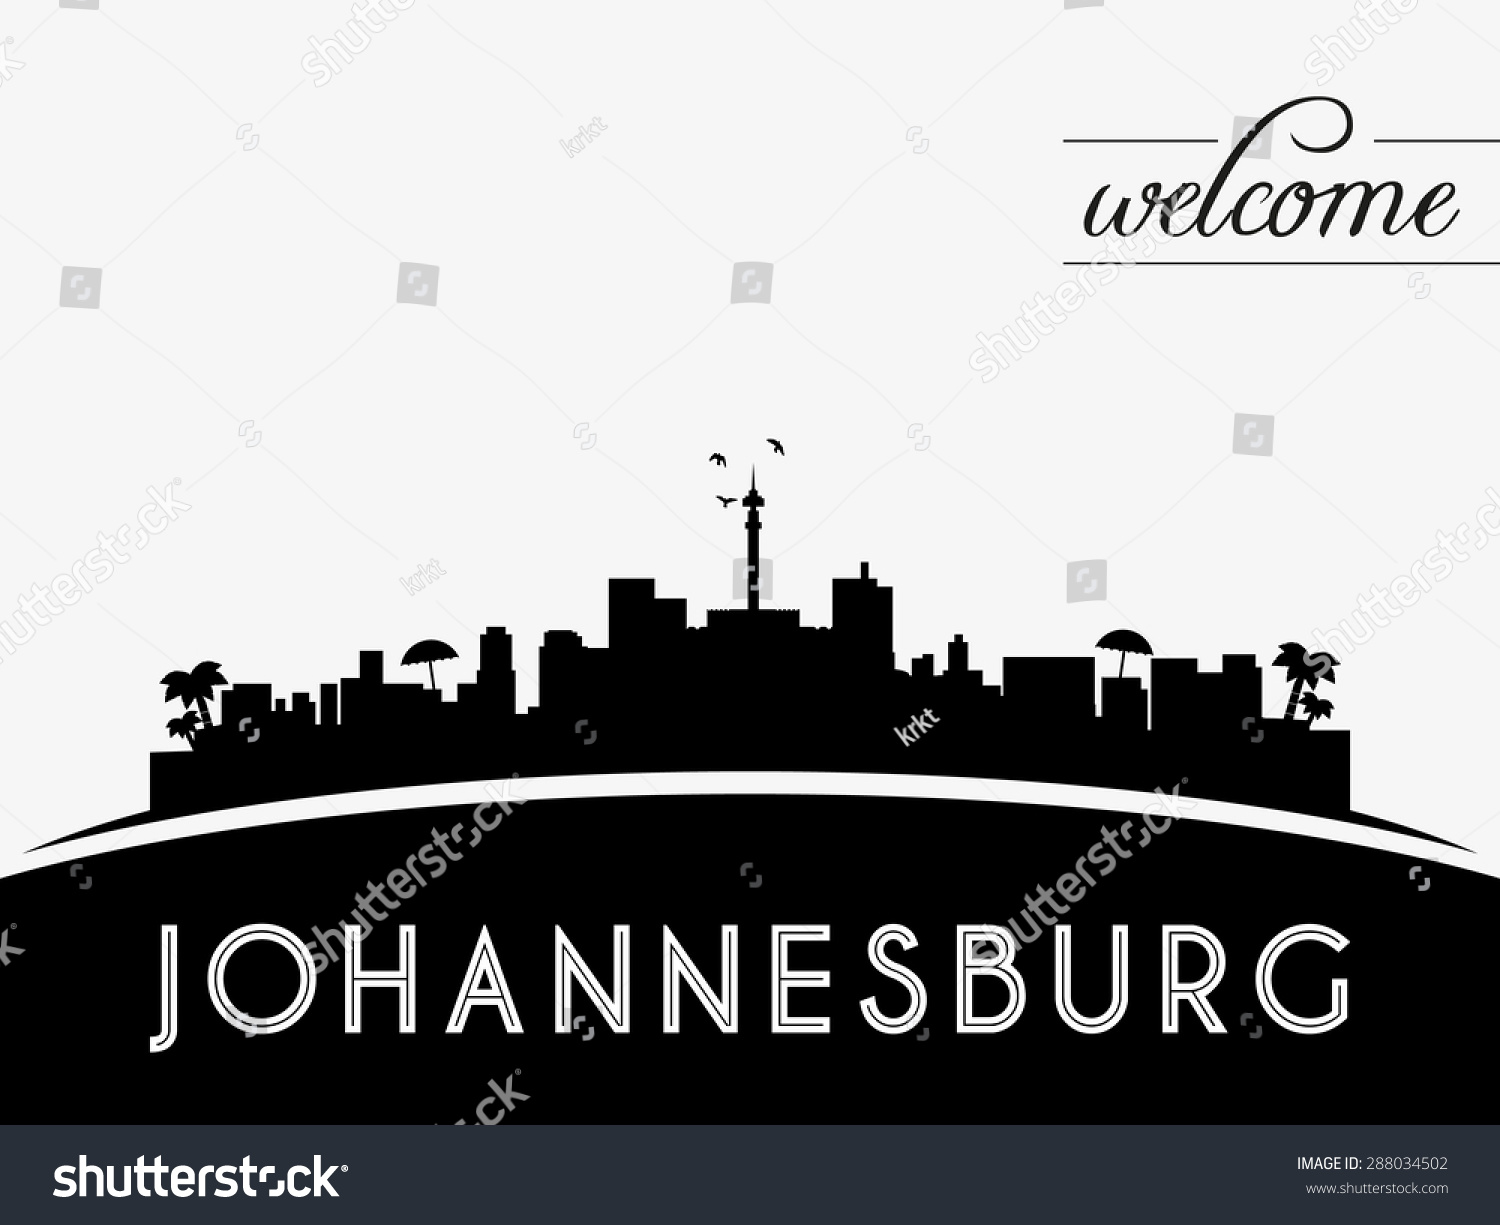 Johannesburg skyline vector illustration linear johannesburg south johannesburg skyline silhouette black vector design on white background thecheapjerseys Image collections